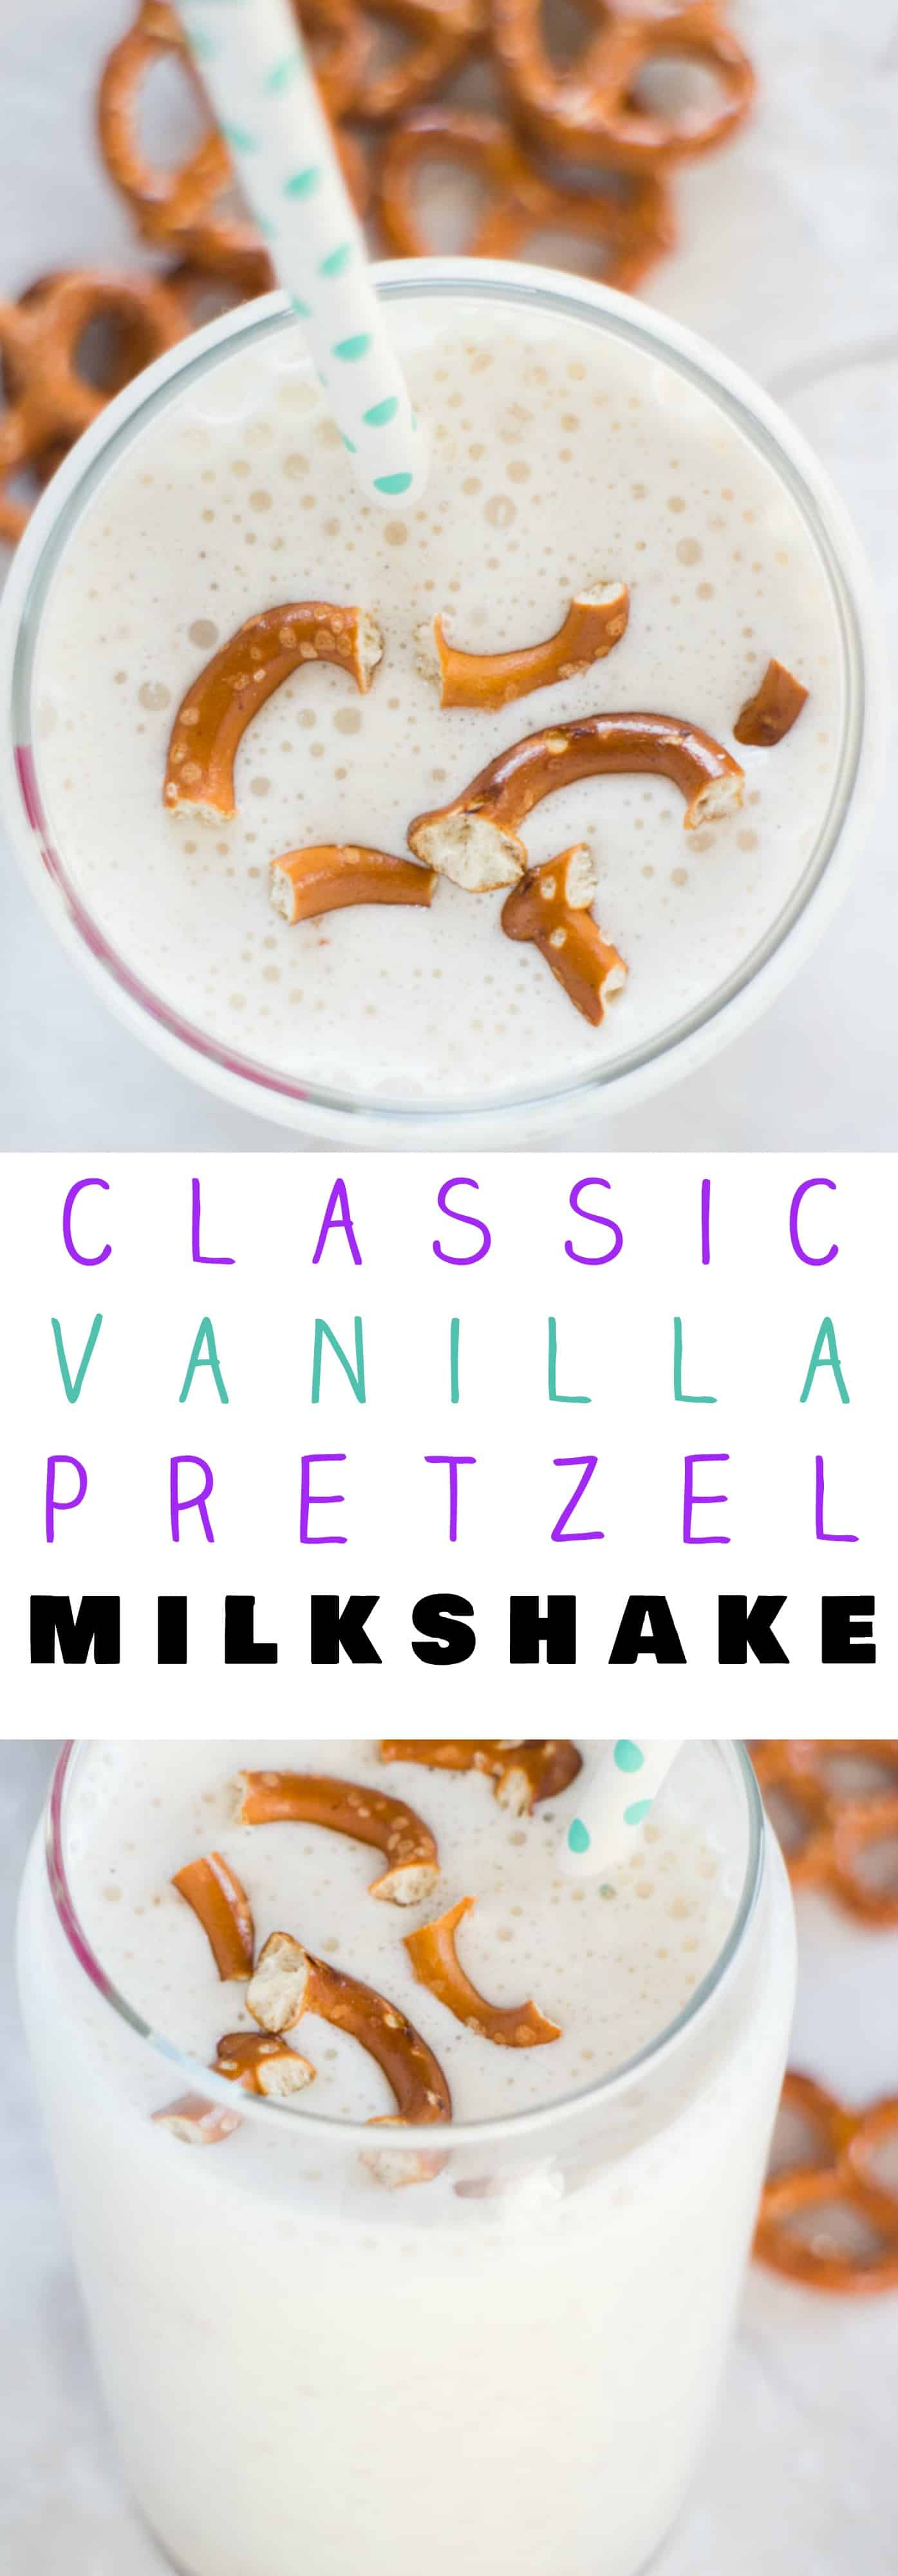 4 Ingredient Vanilla Pretzel Milkshake! This homemade milkshake recipe is easy to make and is the perfect combo of sweet and salty! Throw the 4 ingredients in your blender and it's ready - it's that simple! Perfect for dessert or a Summer treat!